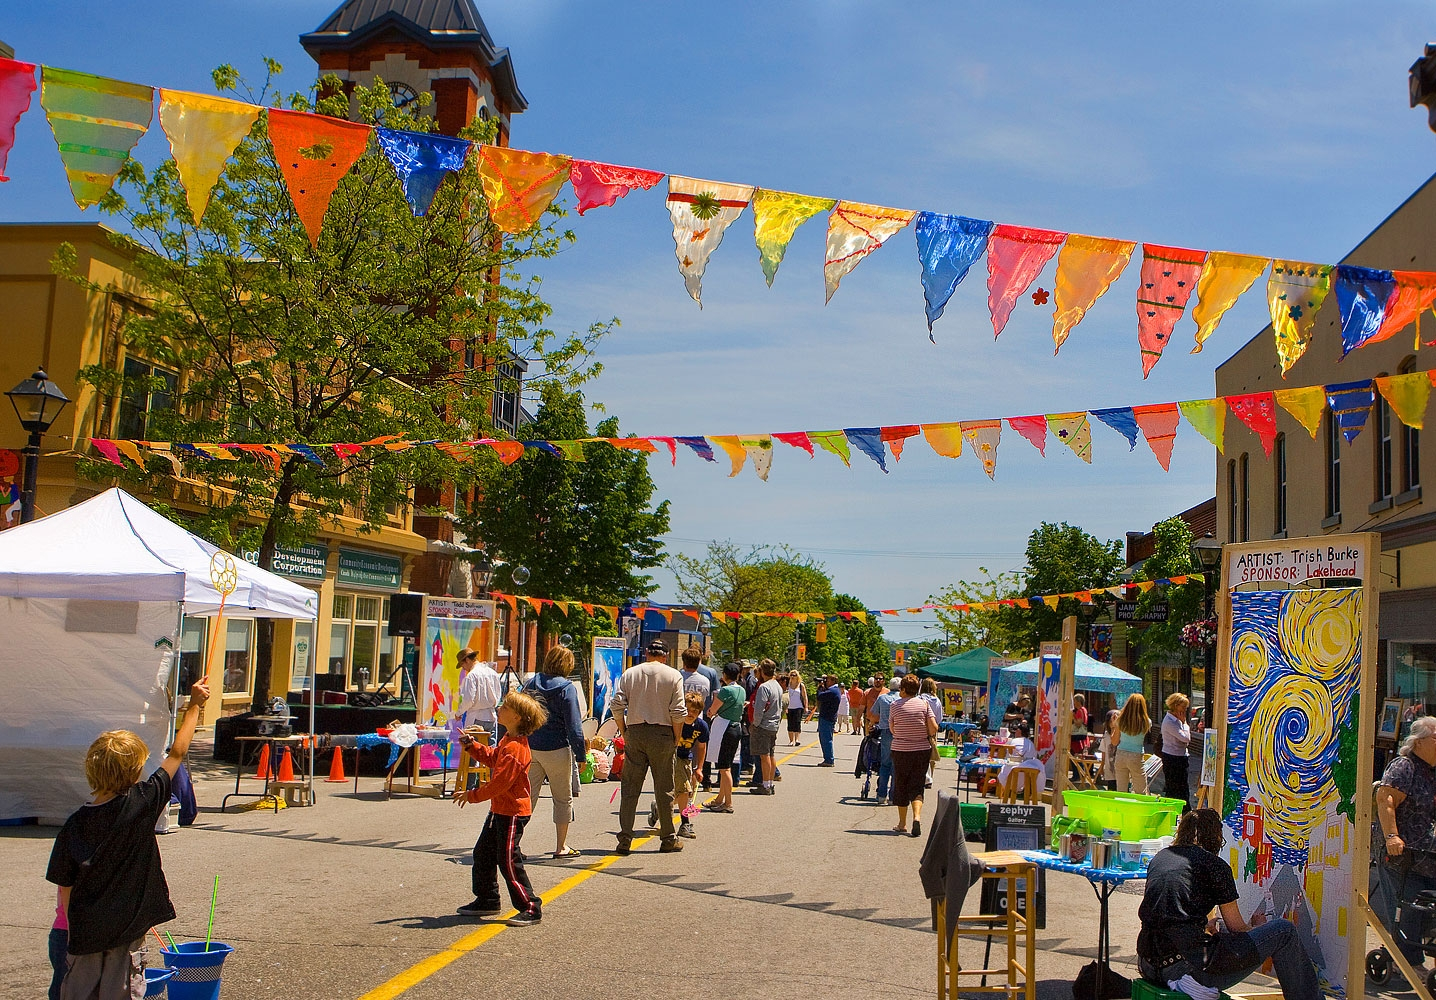 Visitors and residents enjoying a fun and colourful downtown Orillia event.